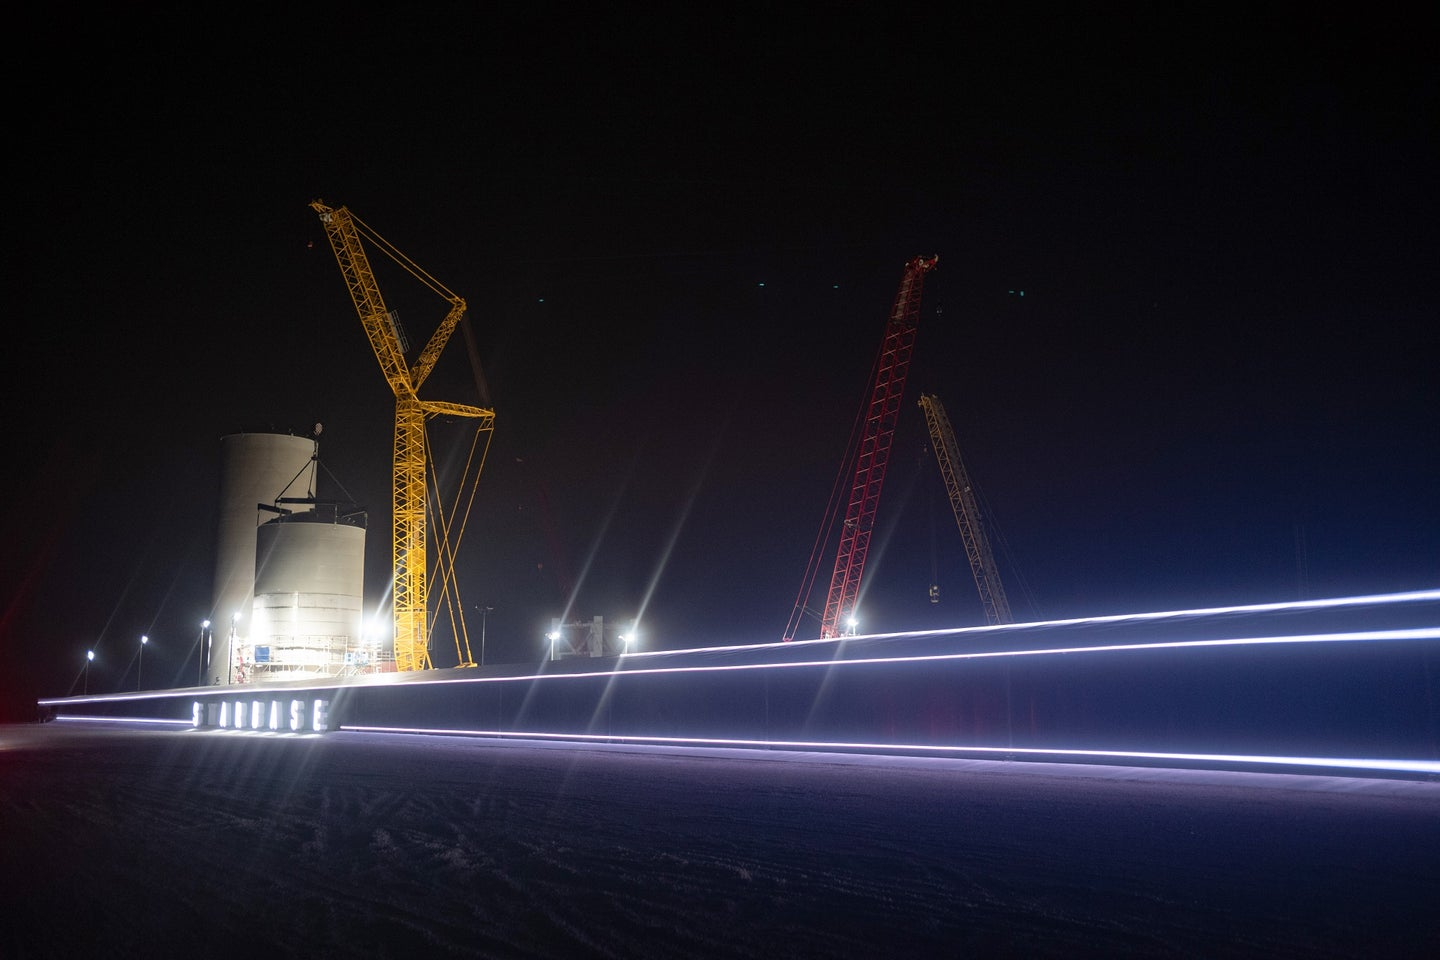 SpaceX flight center in Boca Chica, Texas, at night